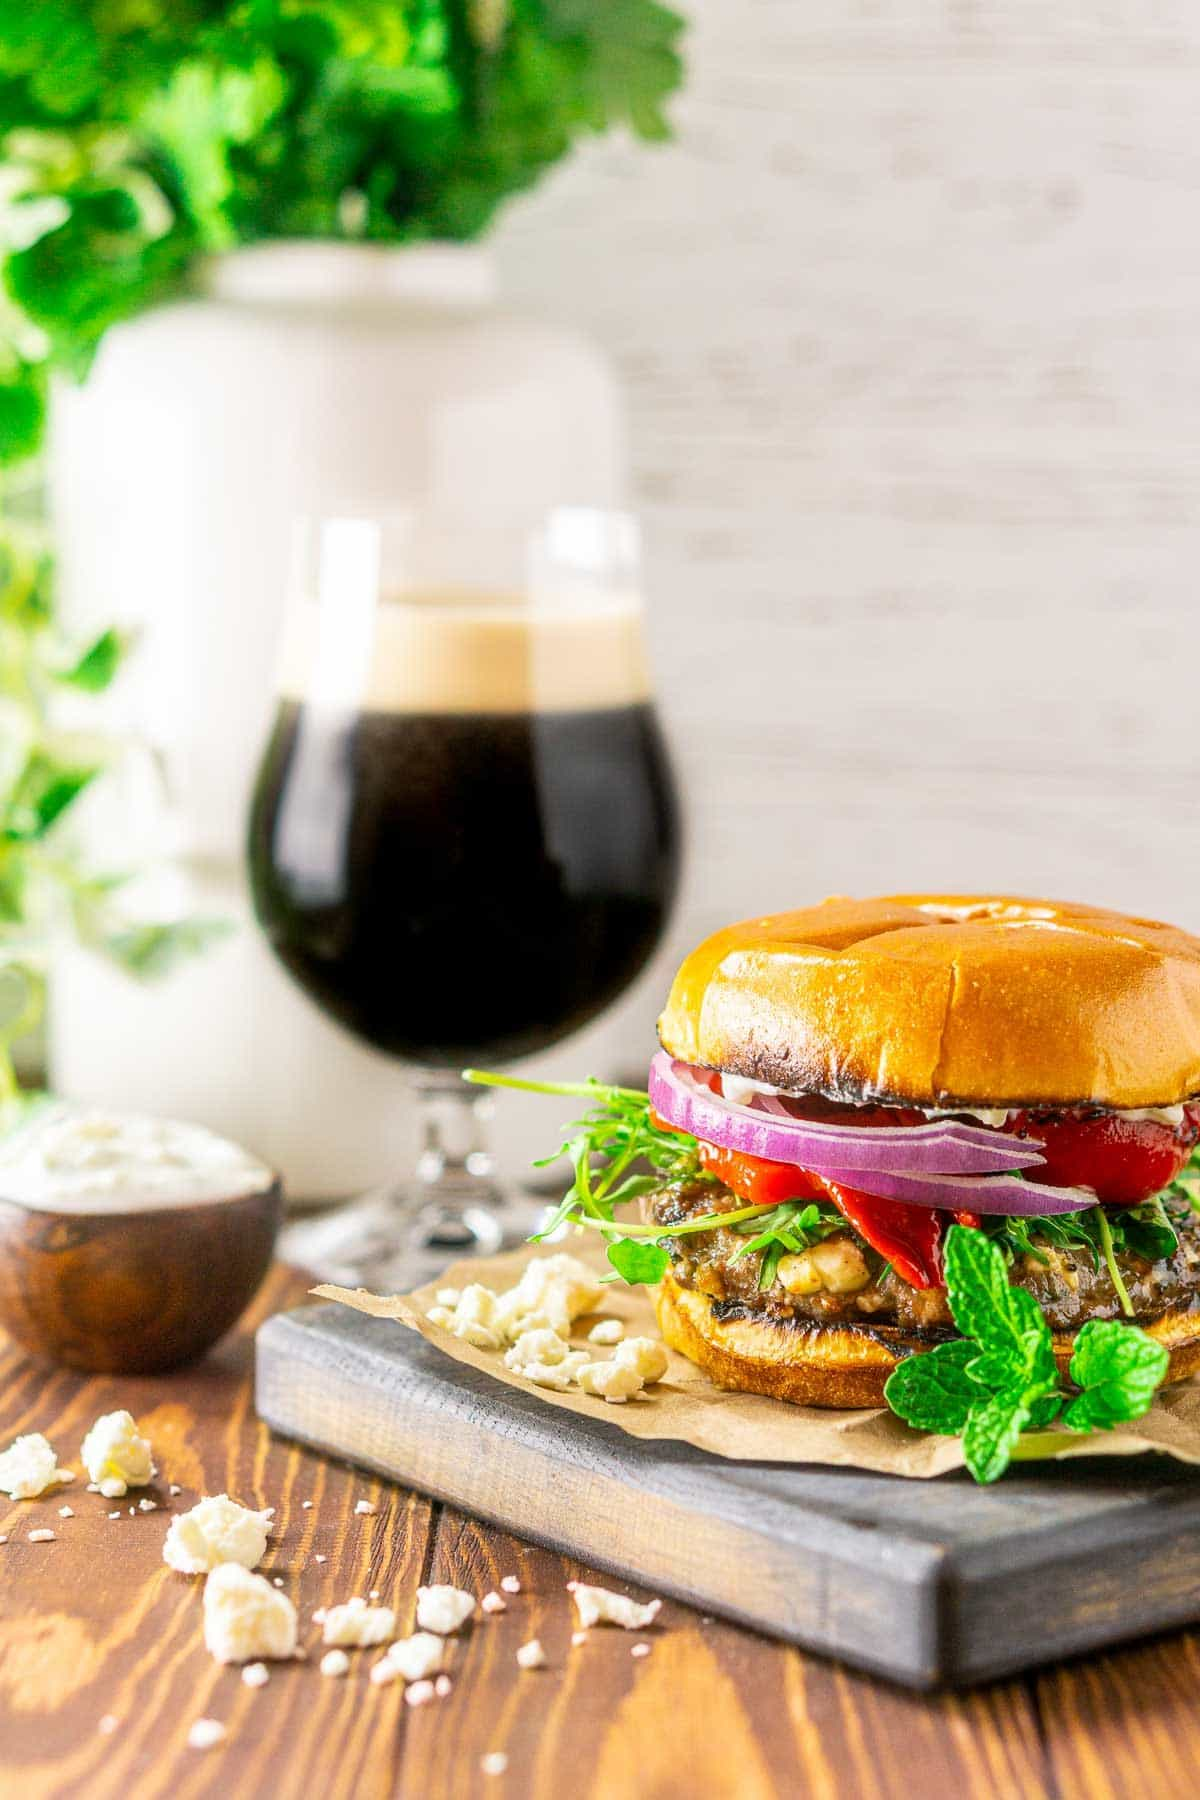 A minted lamb burger with a beer and greenery in the background.